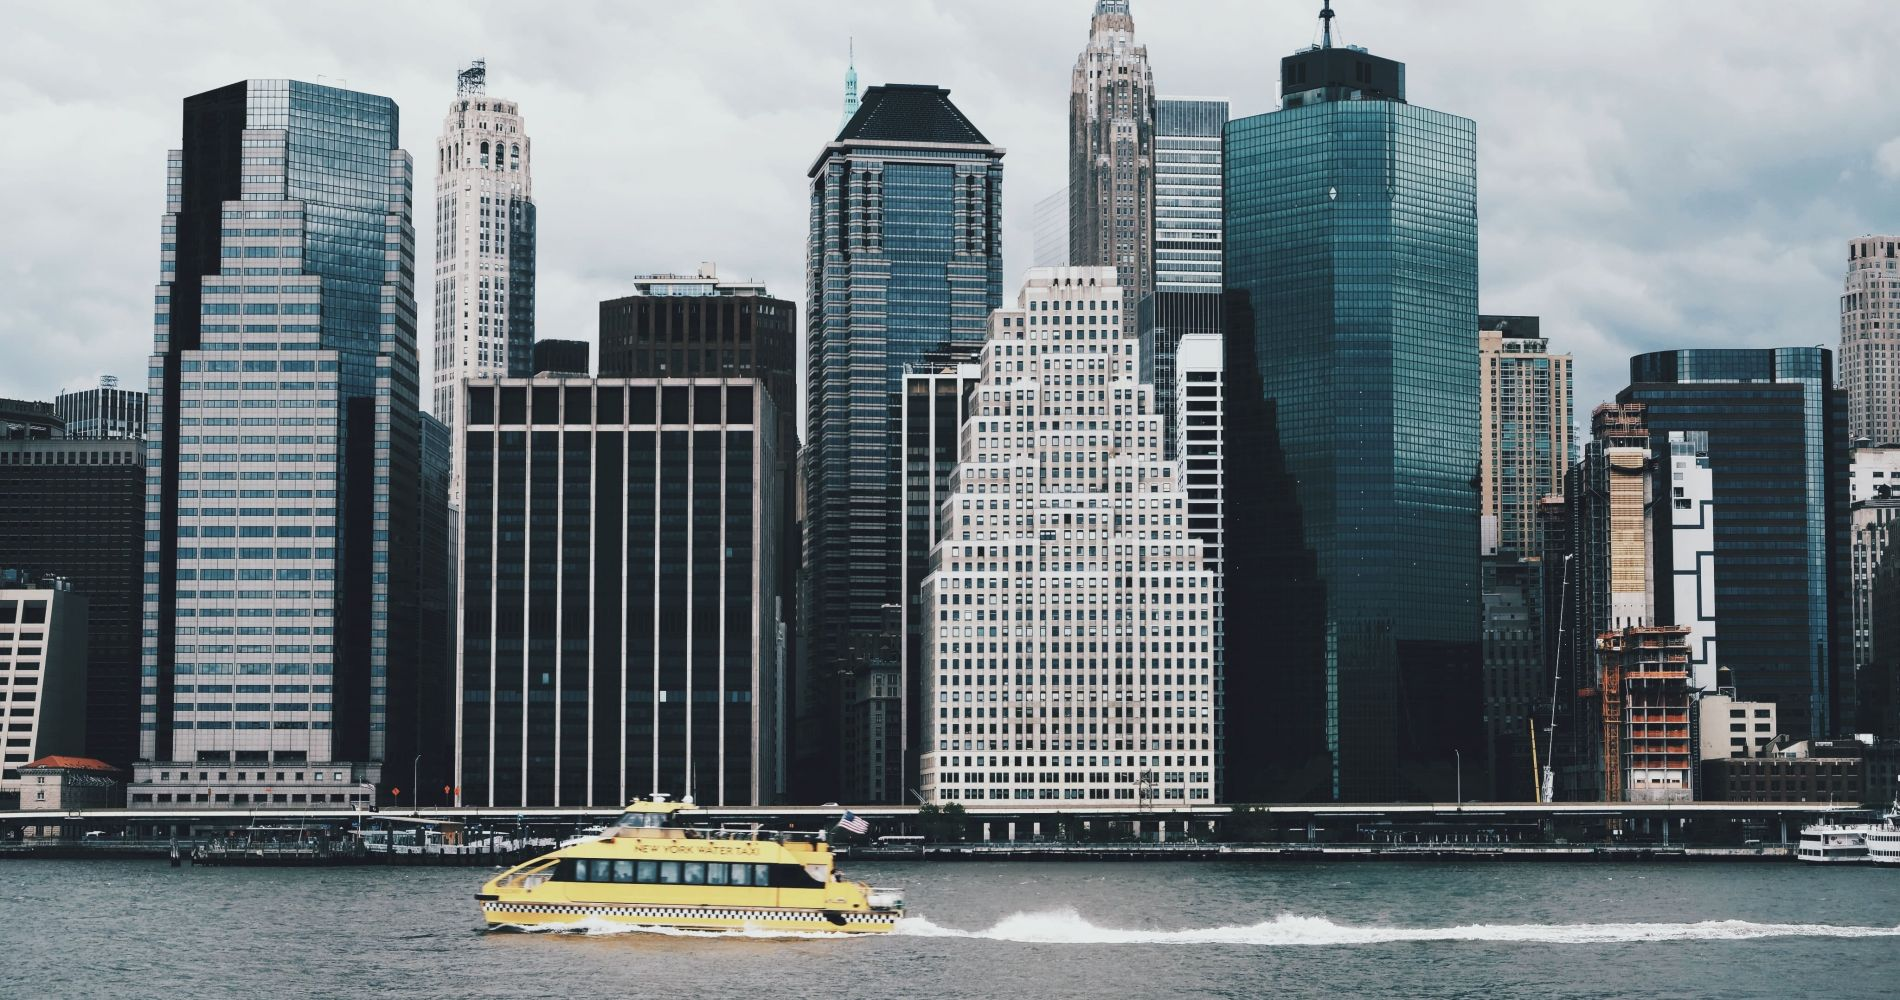 Visit the main attractions with New York Water Taxi